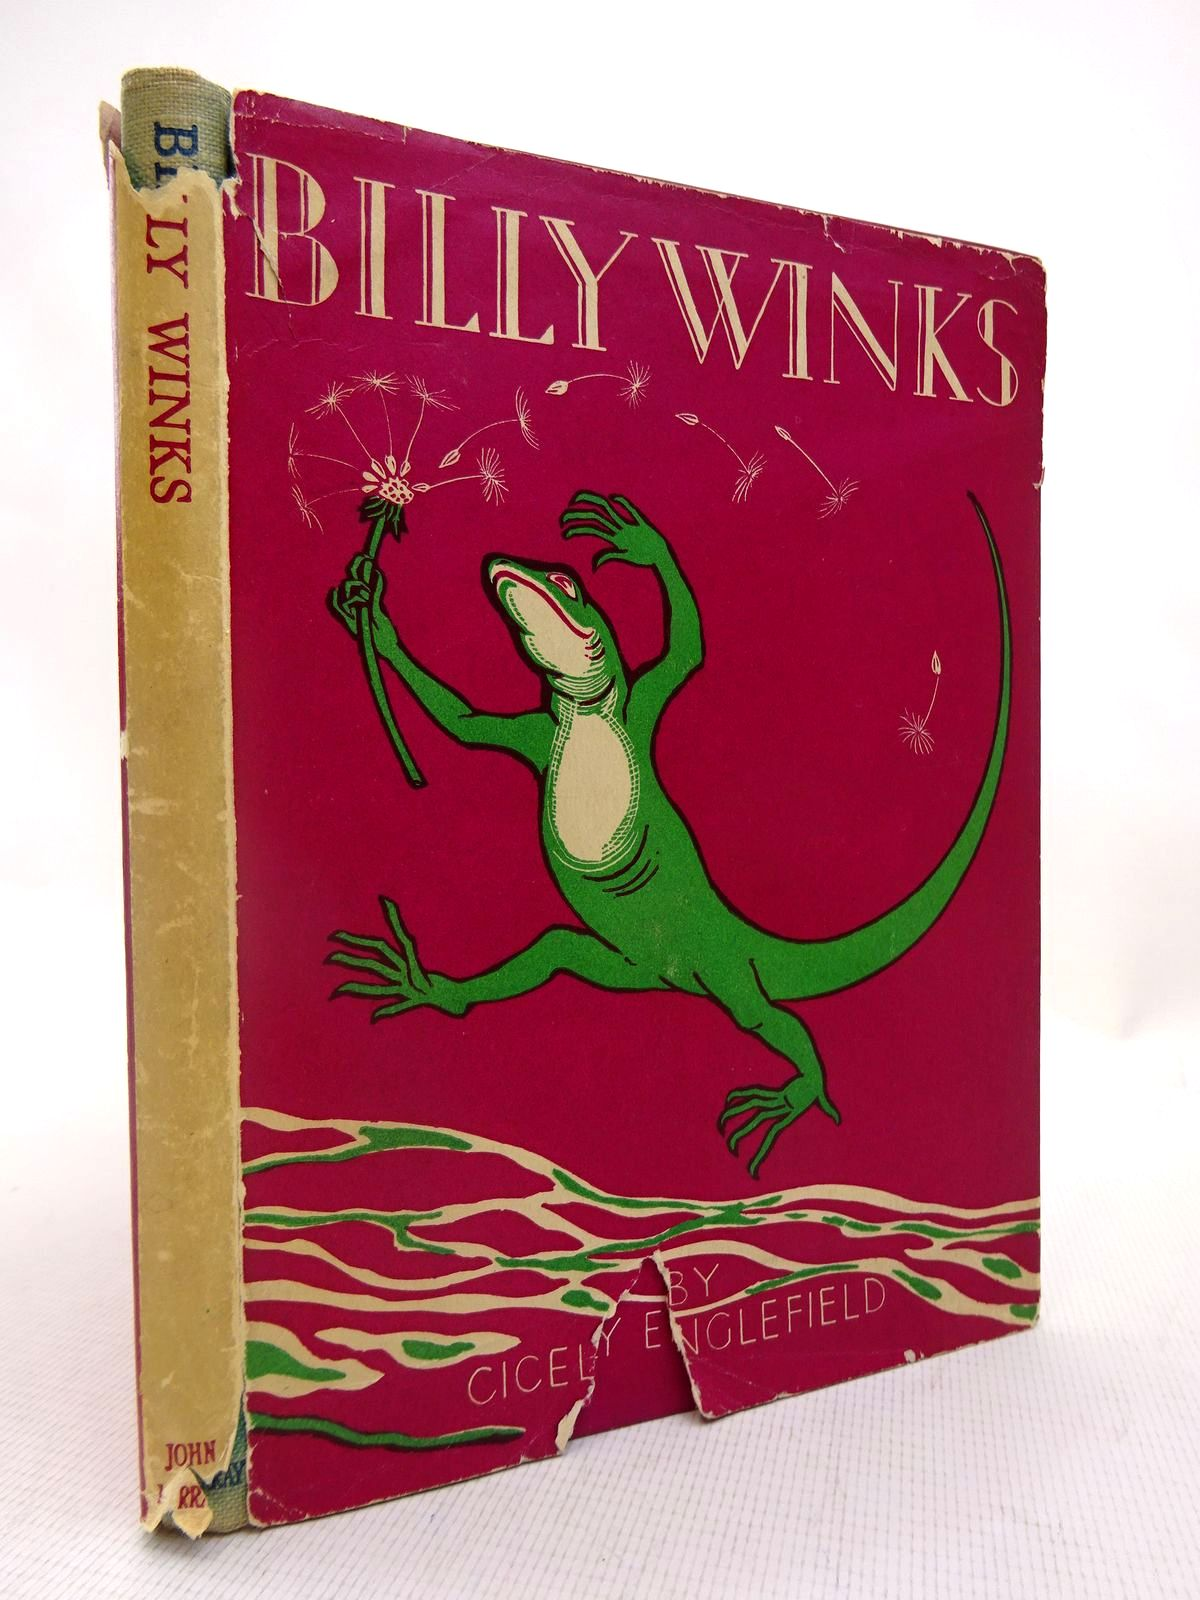 Photo of BILLY WINKS written by Englefield, Cicely illustrated by Englefield, Cicely published by John Murray (STOCK CODE: 1816409)  for sale by Stella & Rose's Books